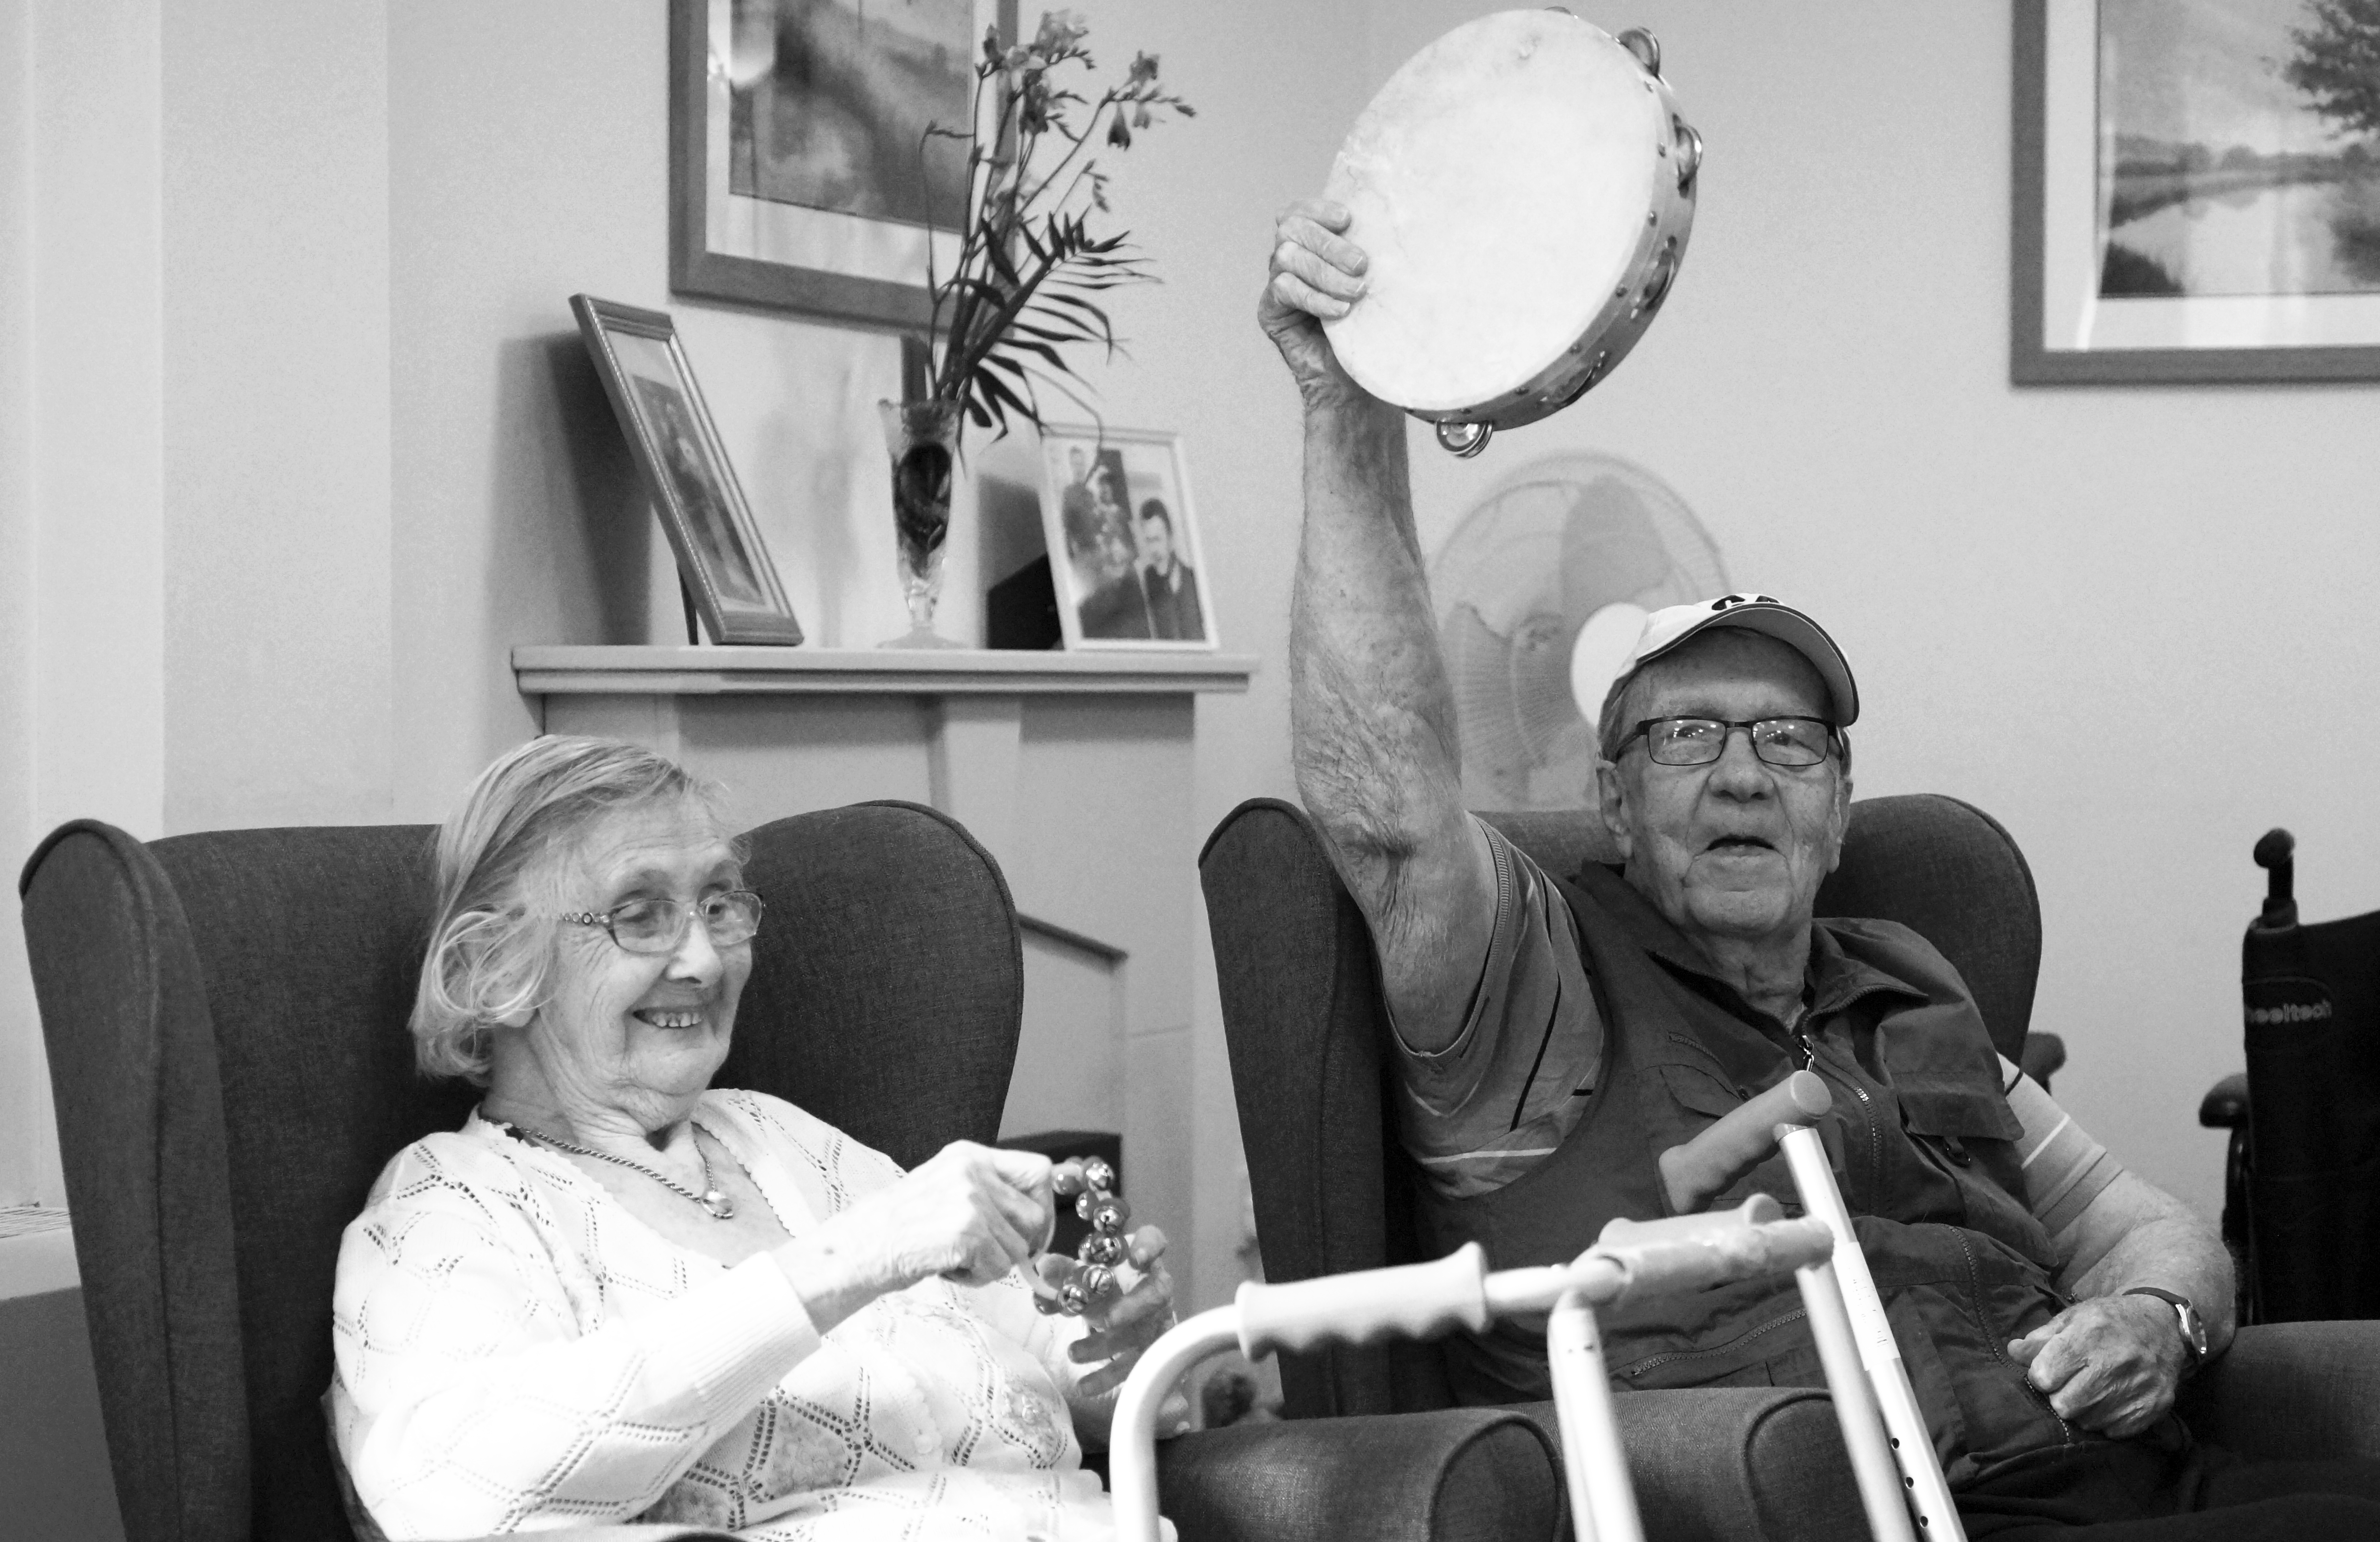 https://musica-music.co.uk/wp-content/uploads/2018/03/Care-Home-5.jpg